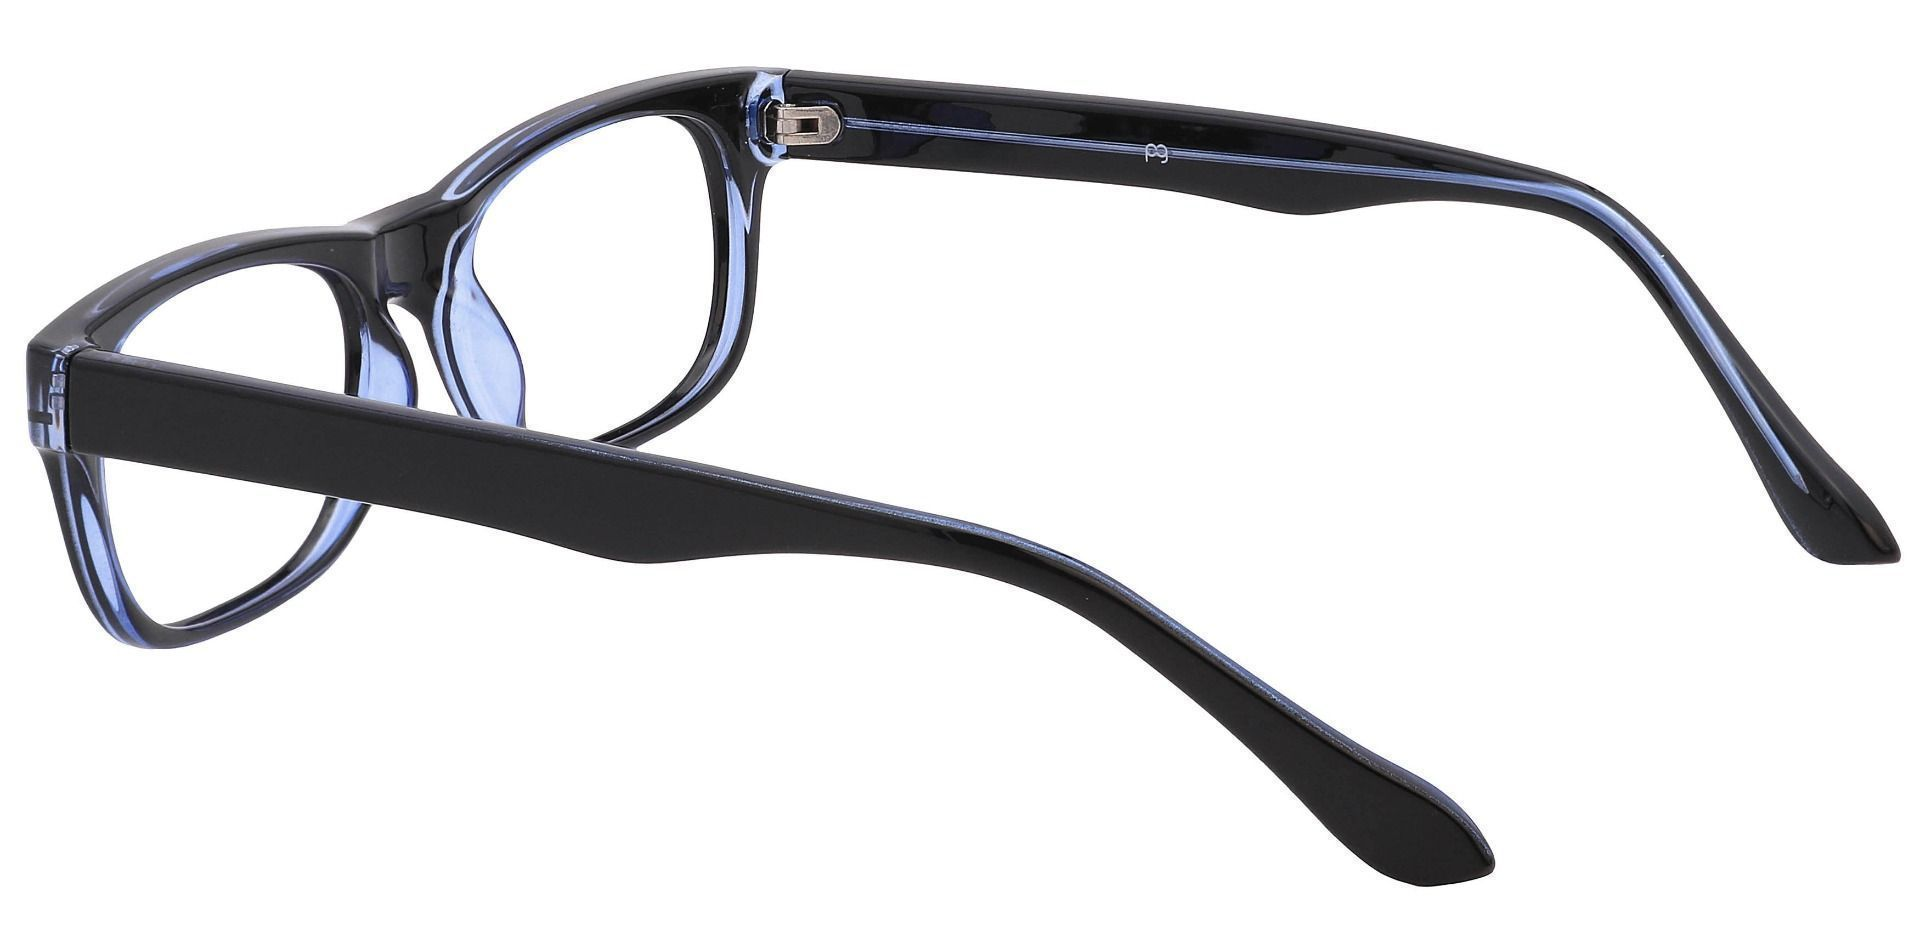 Murphy Rectangle Blue Light Blocking Glasses - The Frame Is Blue And Black